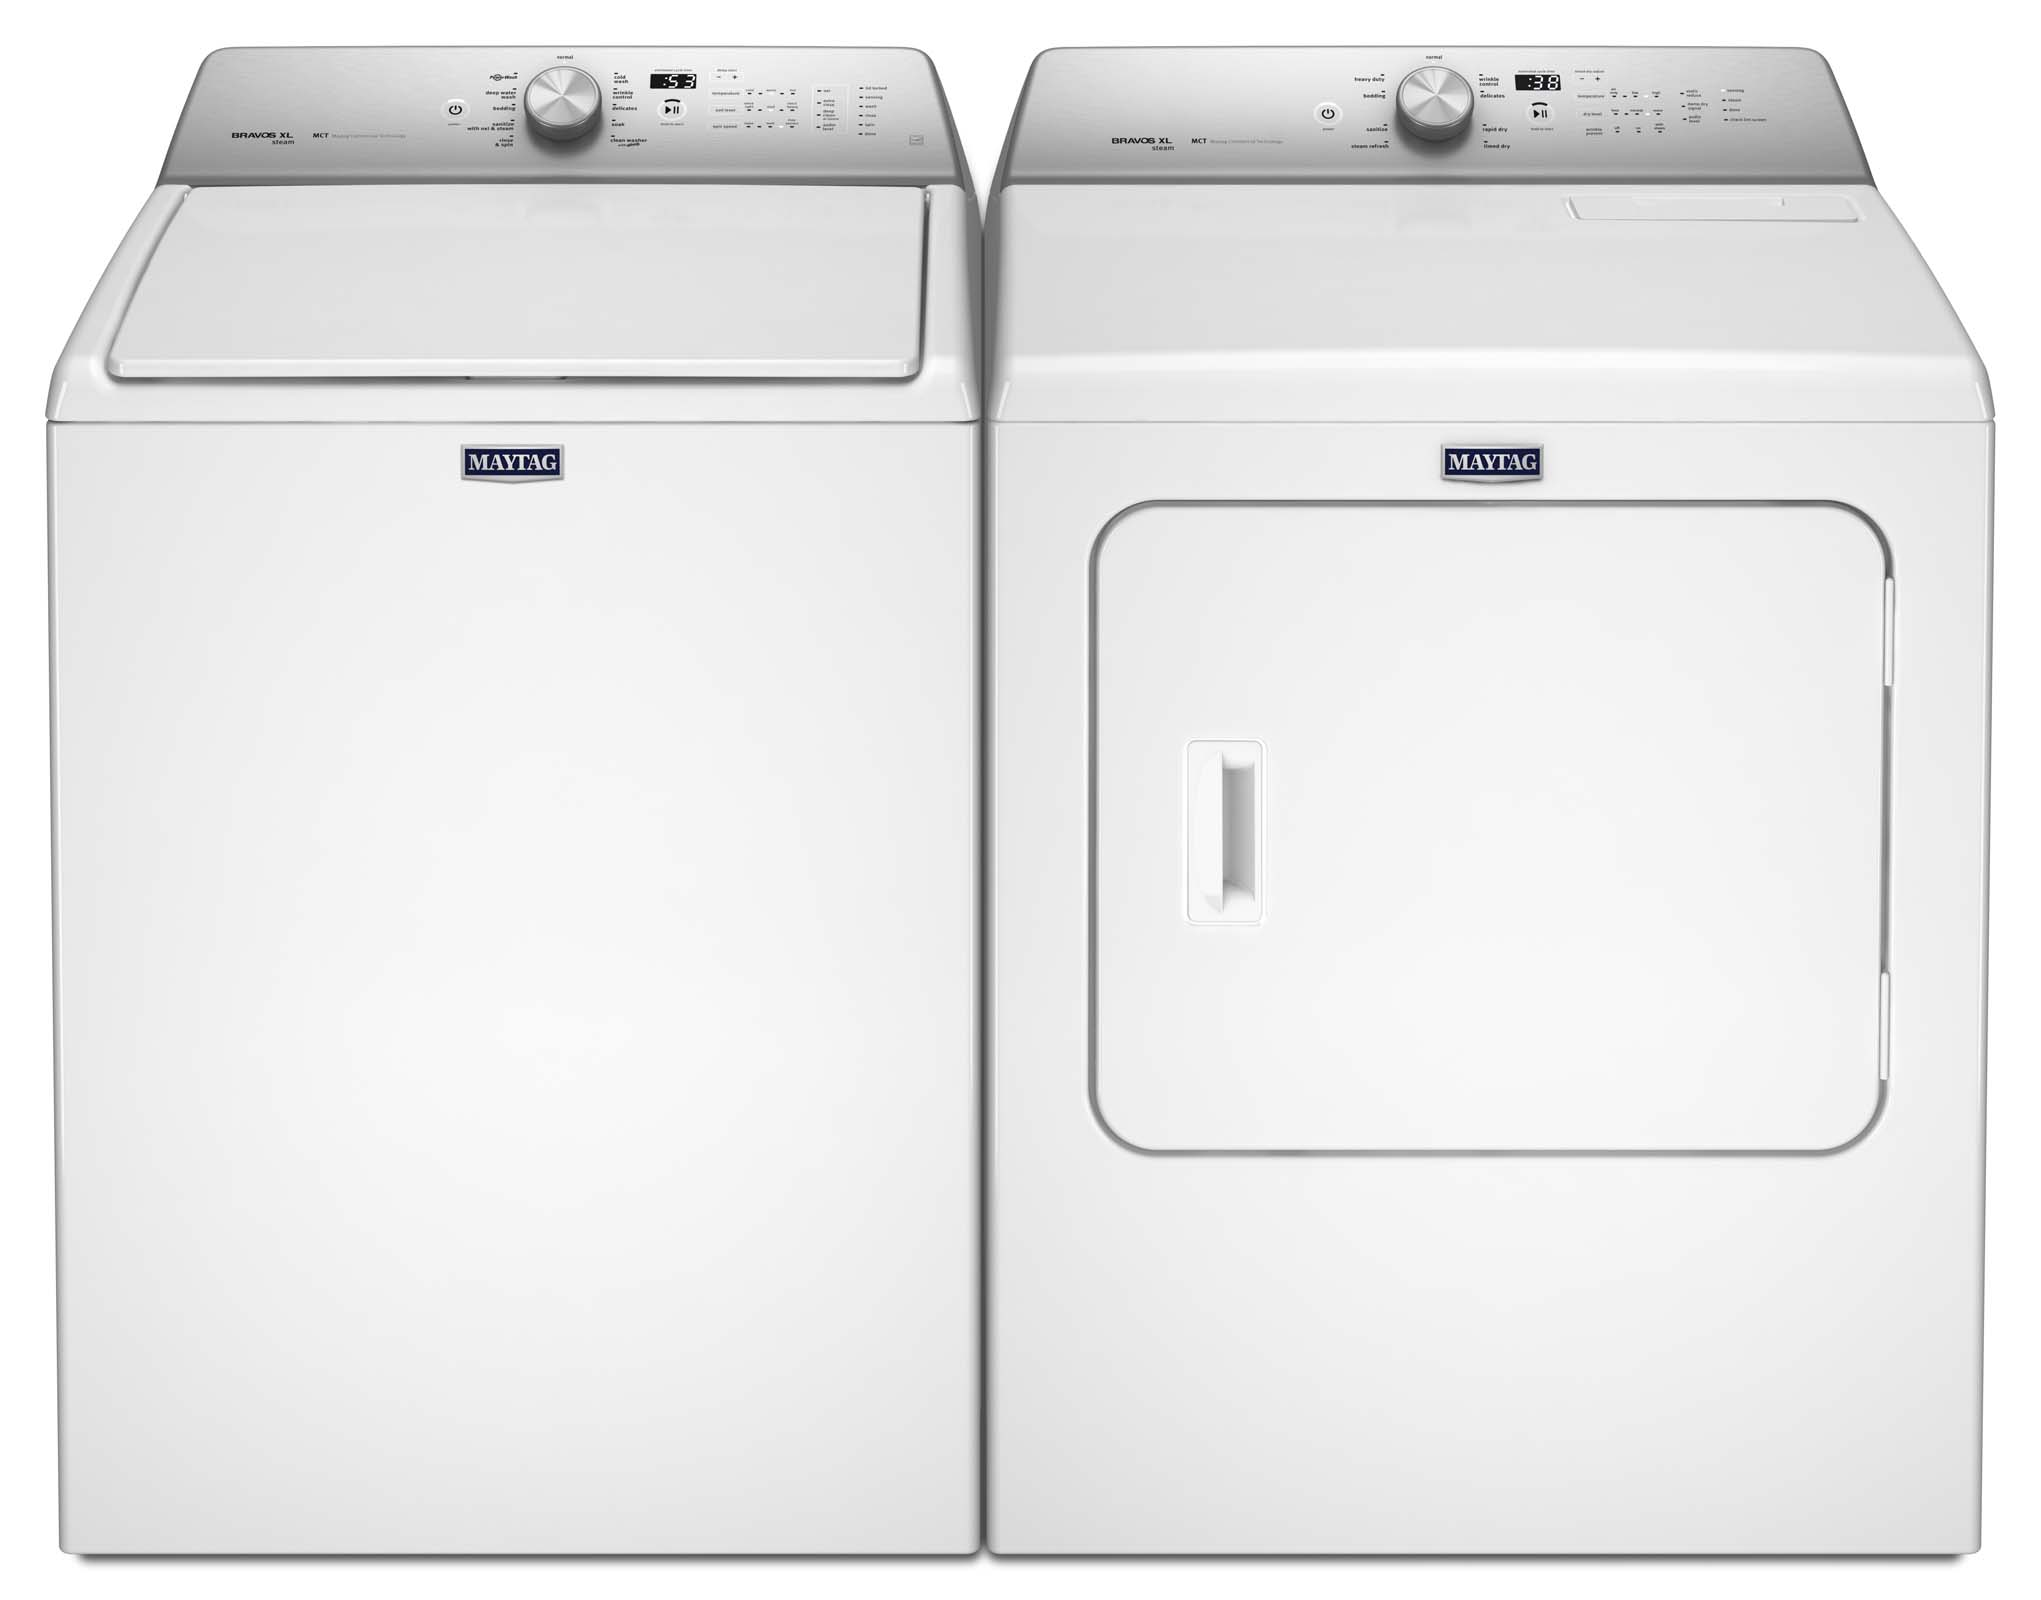 Maytag MEDB755DW 7.0 cu. ft. Electric Dryer - White